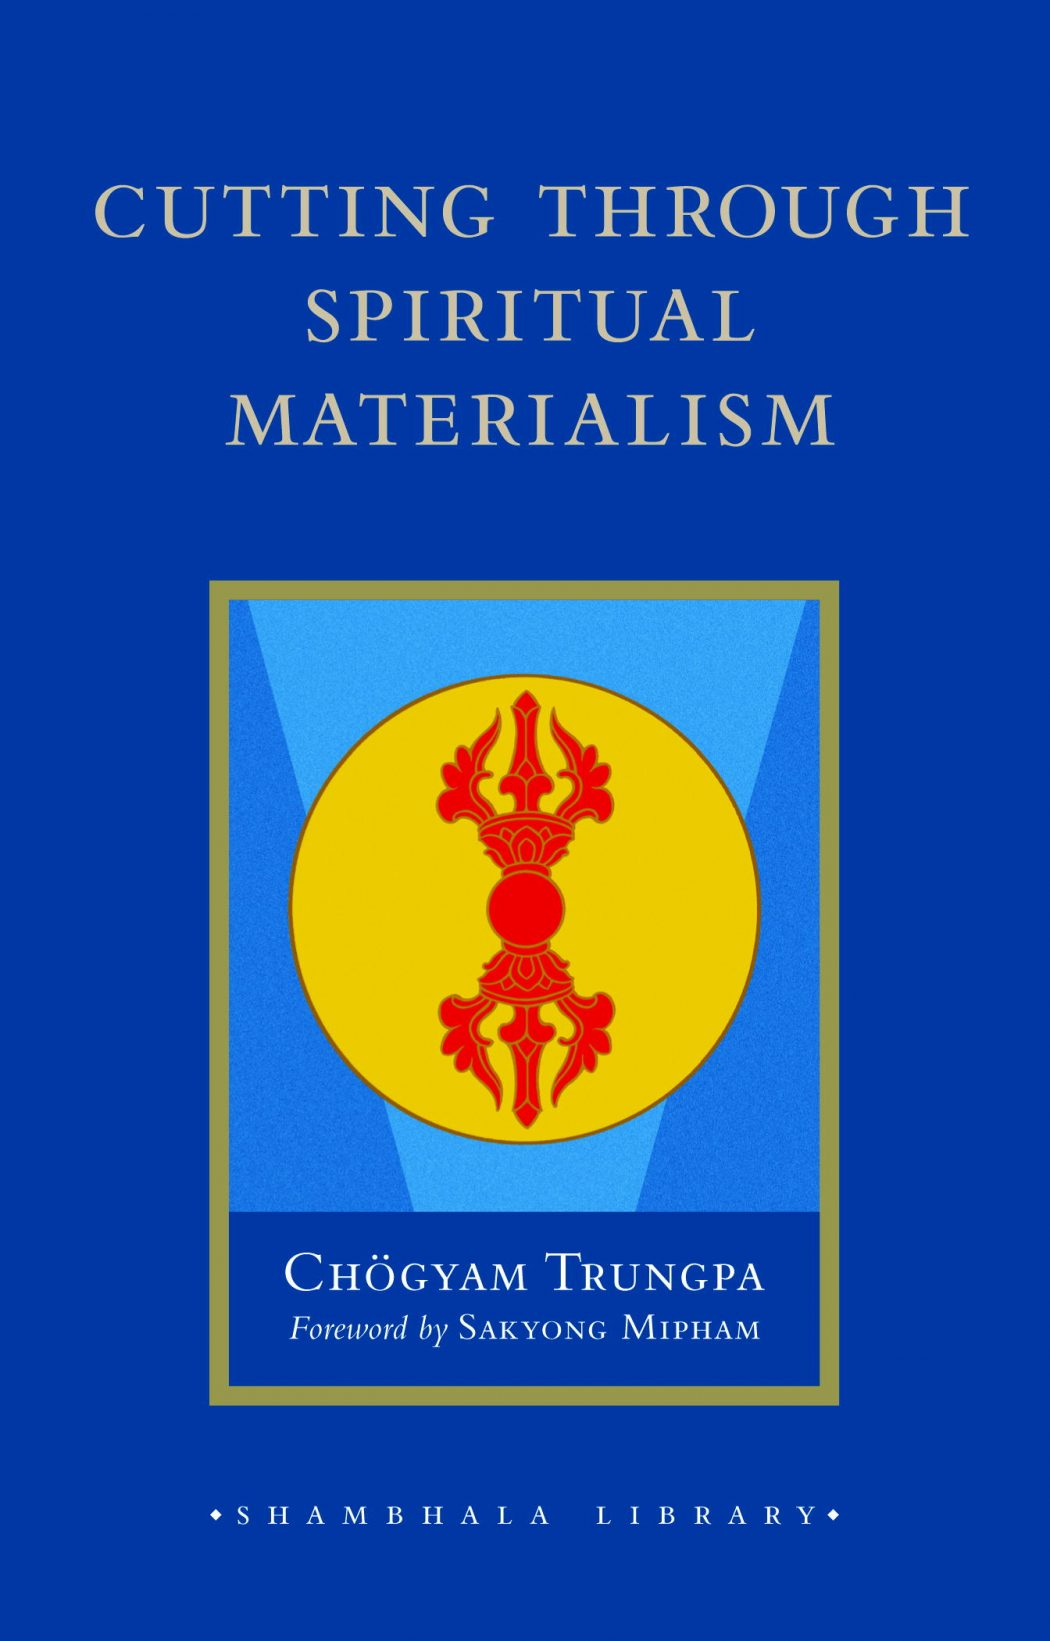 BOOKS-cutting-thru-spiritual-materialism What Information Is Included in a Background Check?